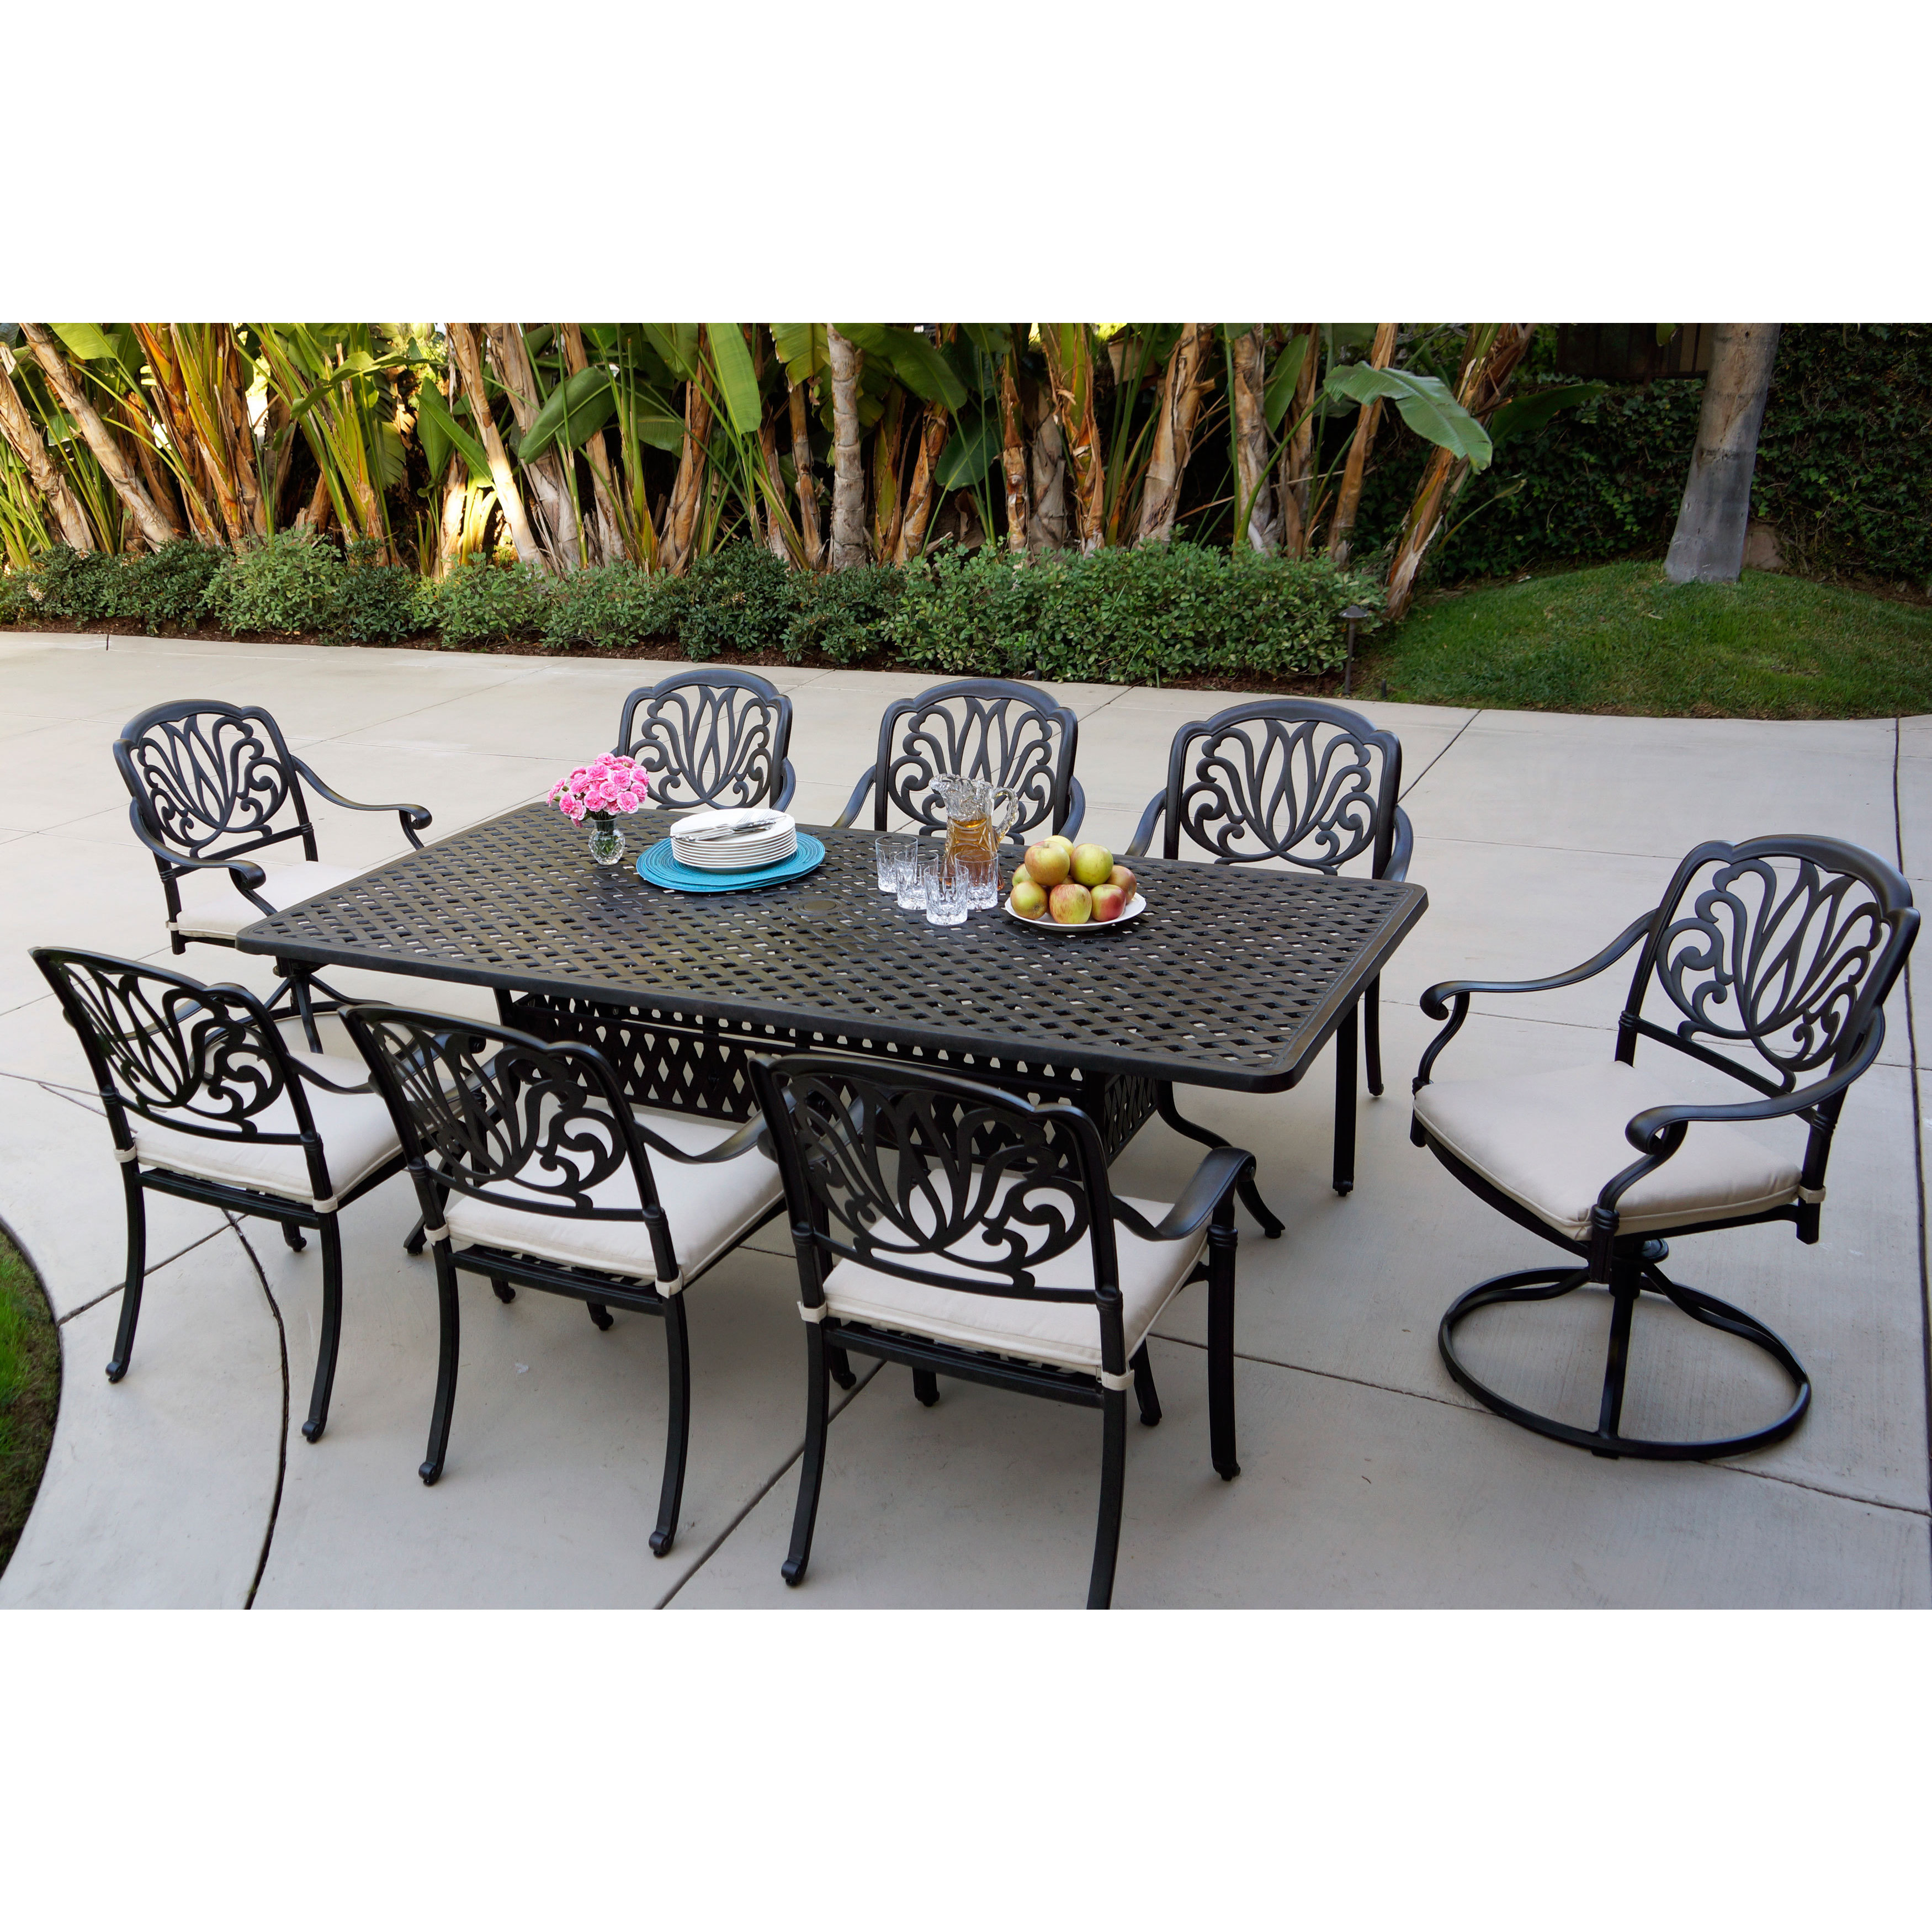 Sicily Antique Bronze 9 Piece Outdoor Dining Set With Seat Cushions